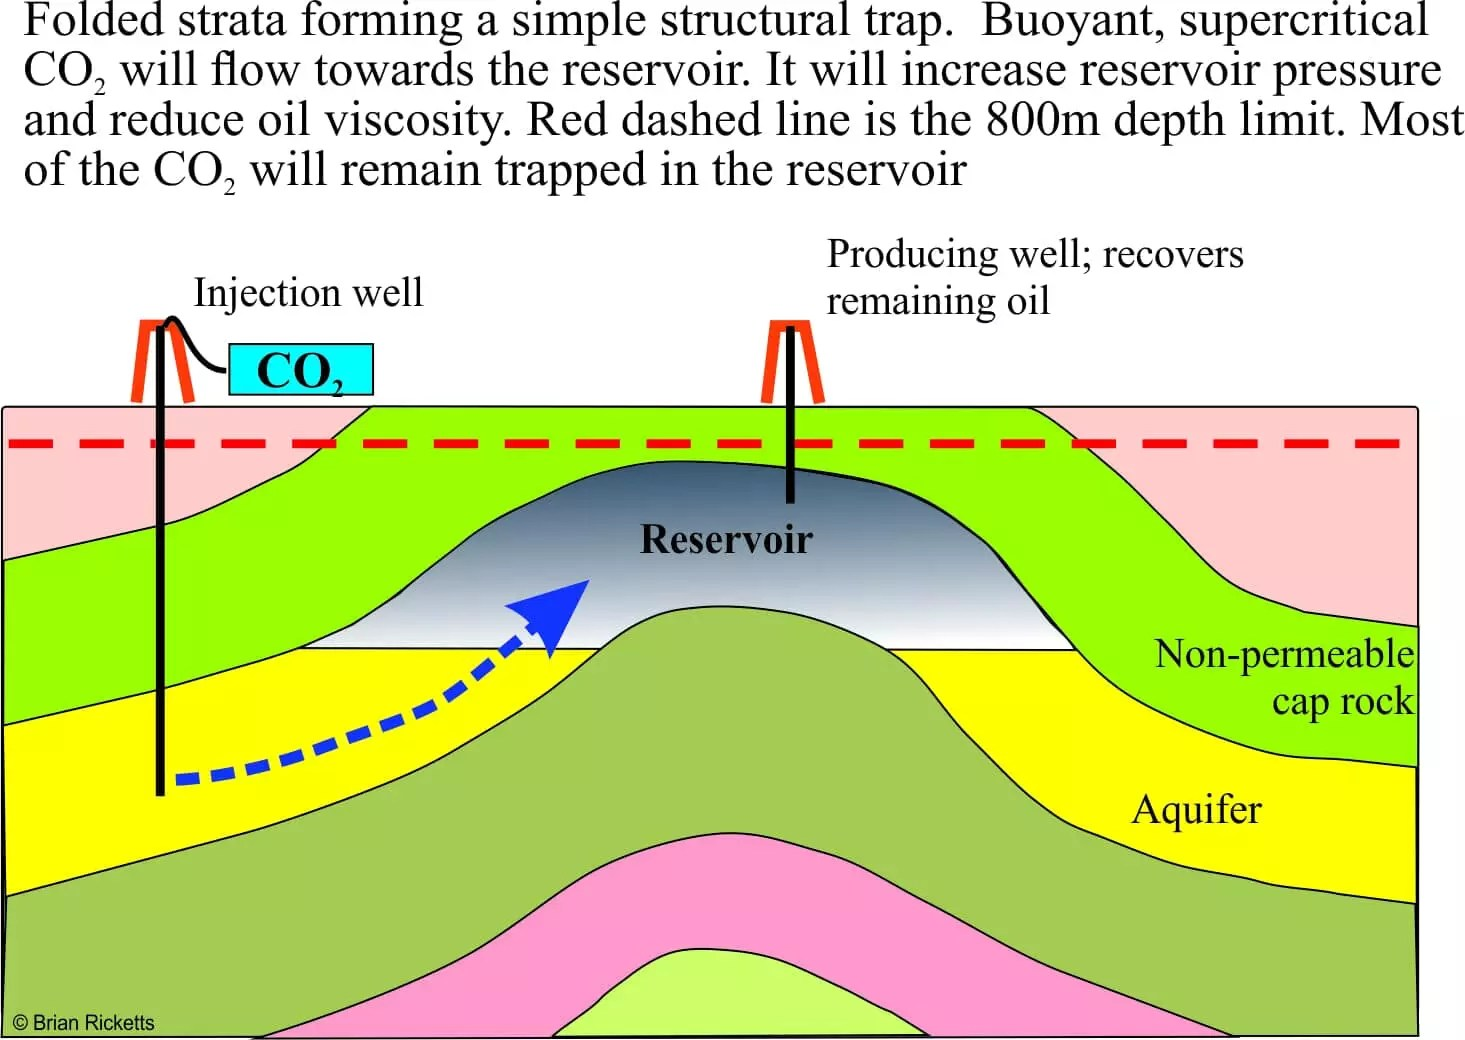 Geological trappings carbon capture and storage geological eor co2 pooptronica